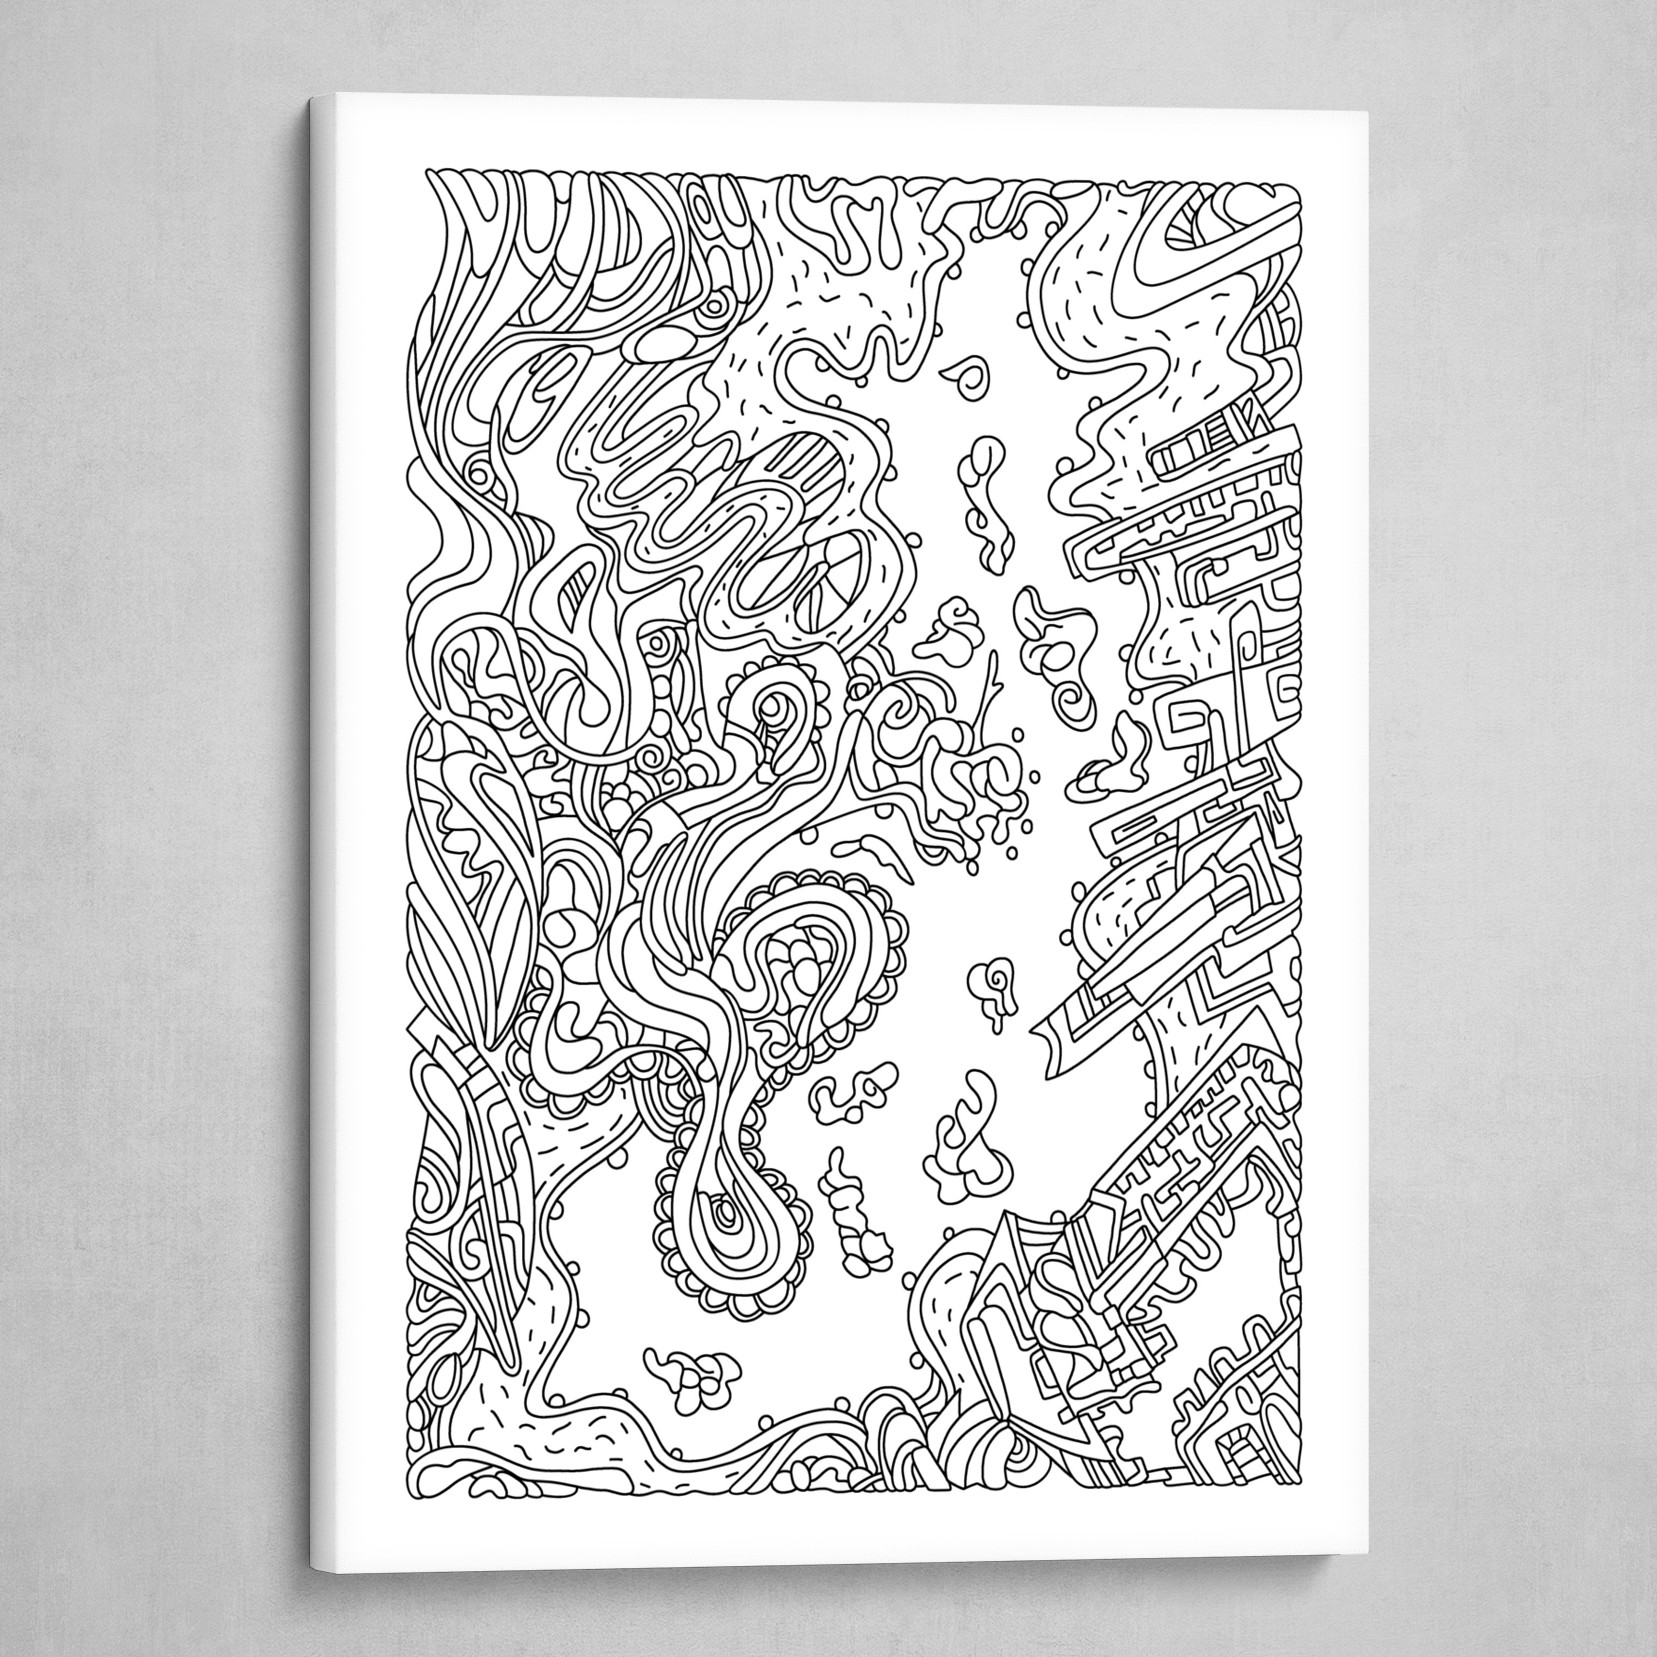 Wandering 20: black & white line art